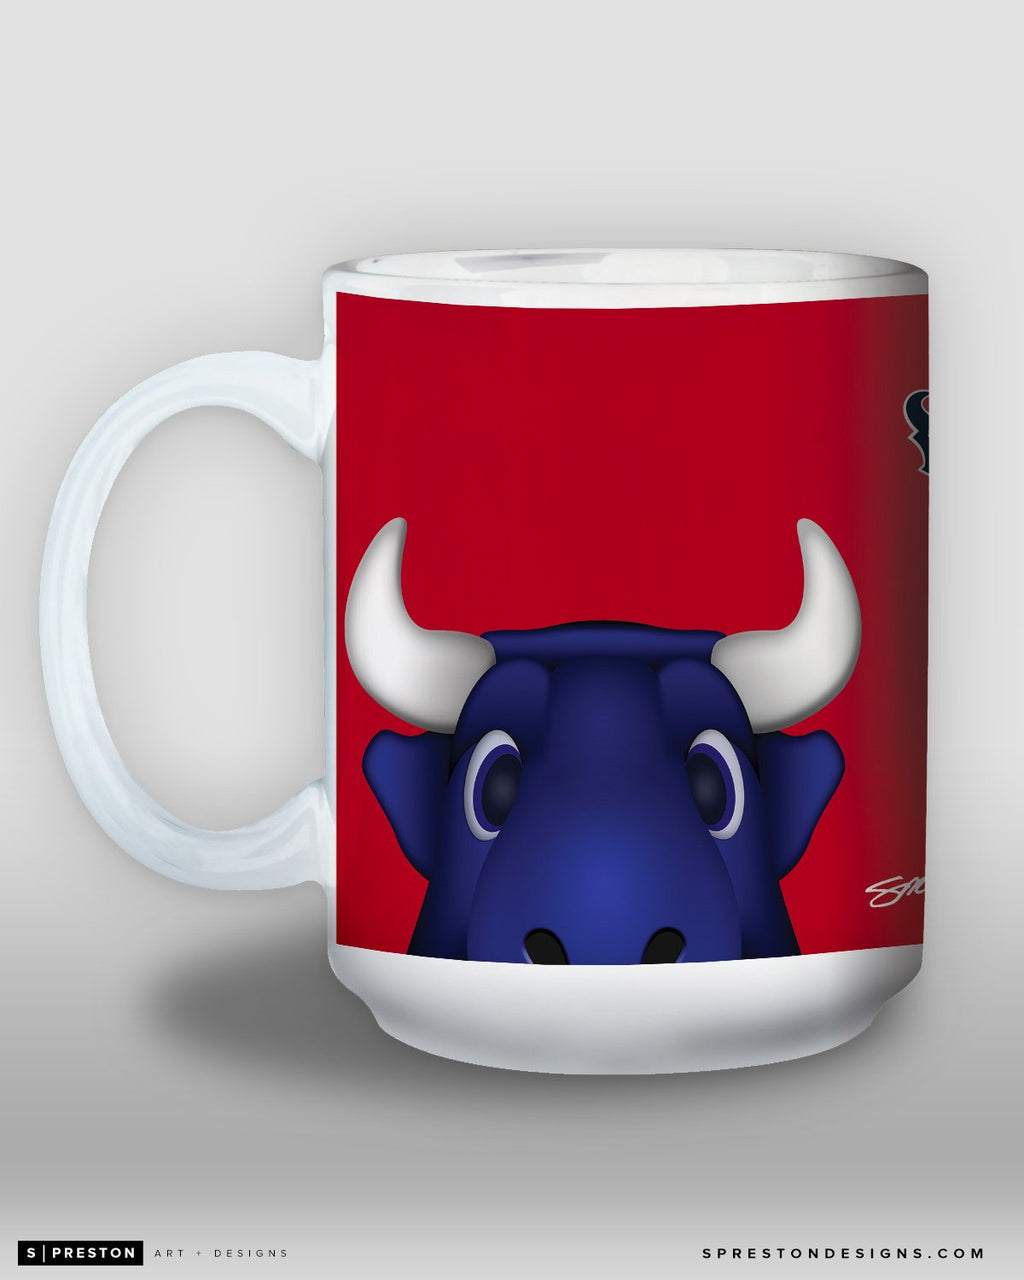 Minimalist Toro Coffee Mug Houston Texans Mascot - S. Preston